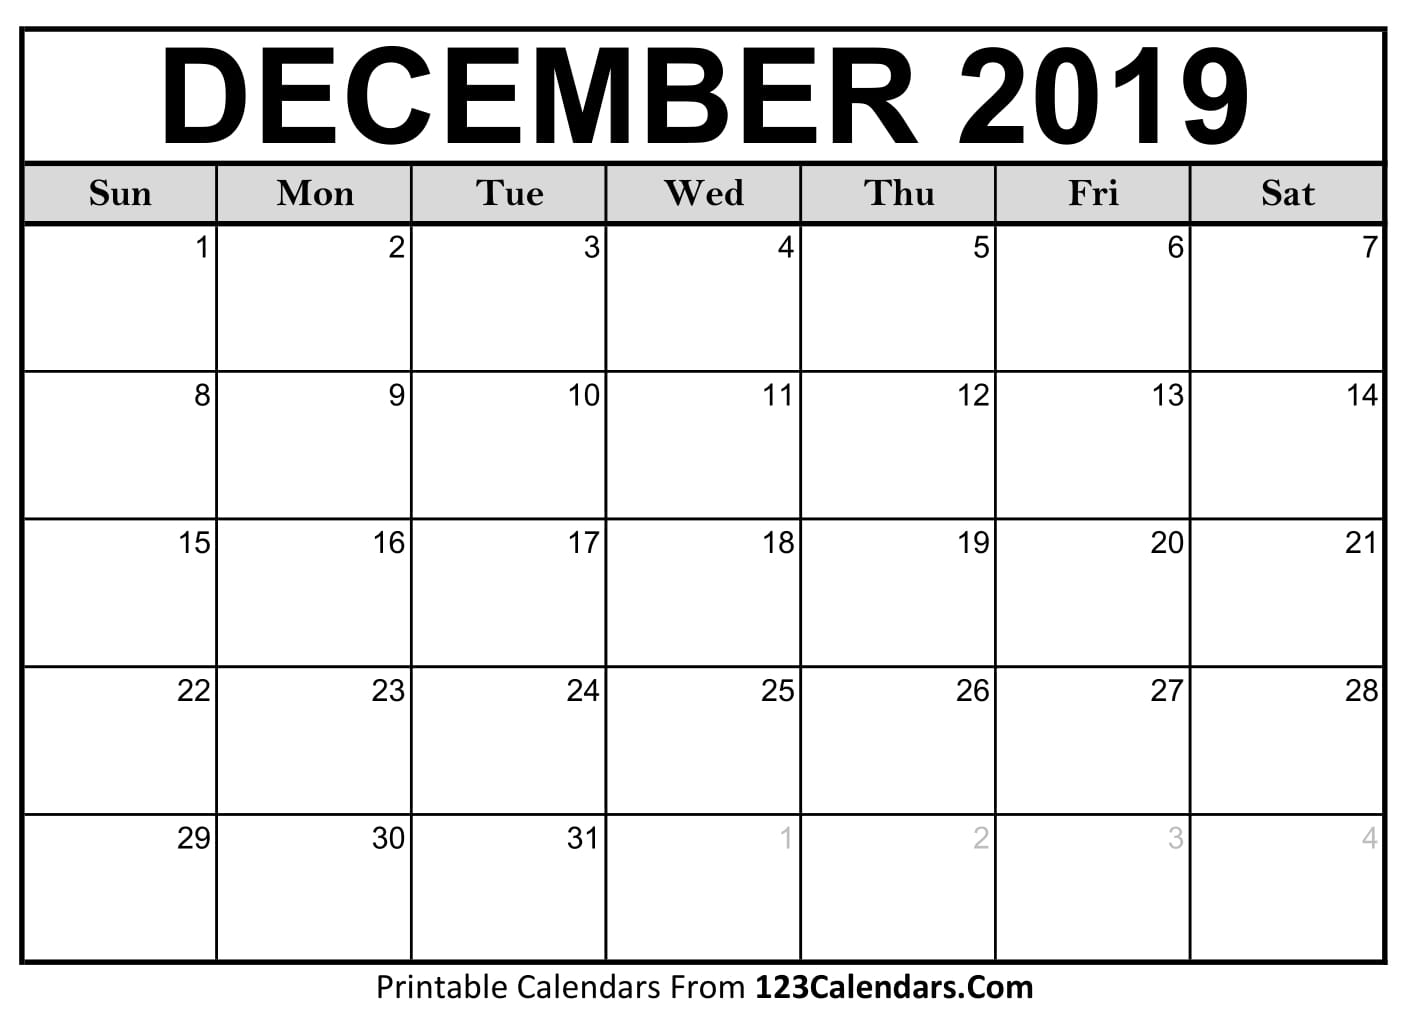 December 2019 Printable Calendar | 123Calendars in Blank Monthly Calendar Dec